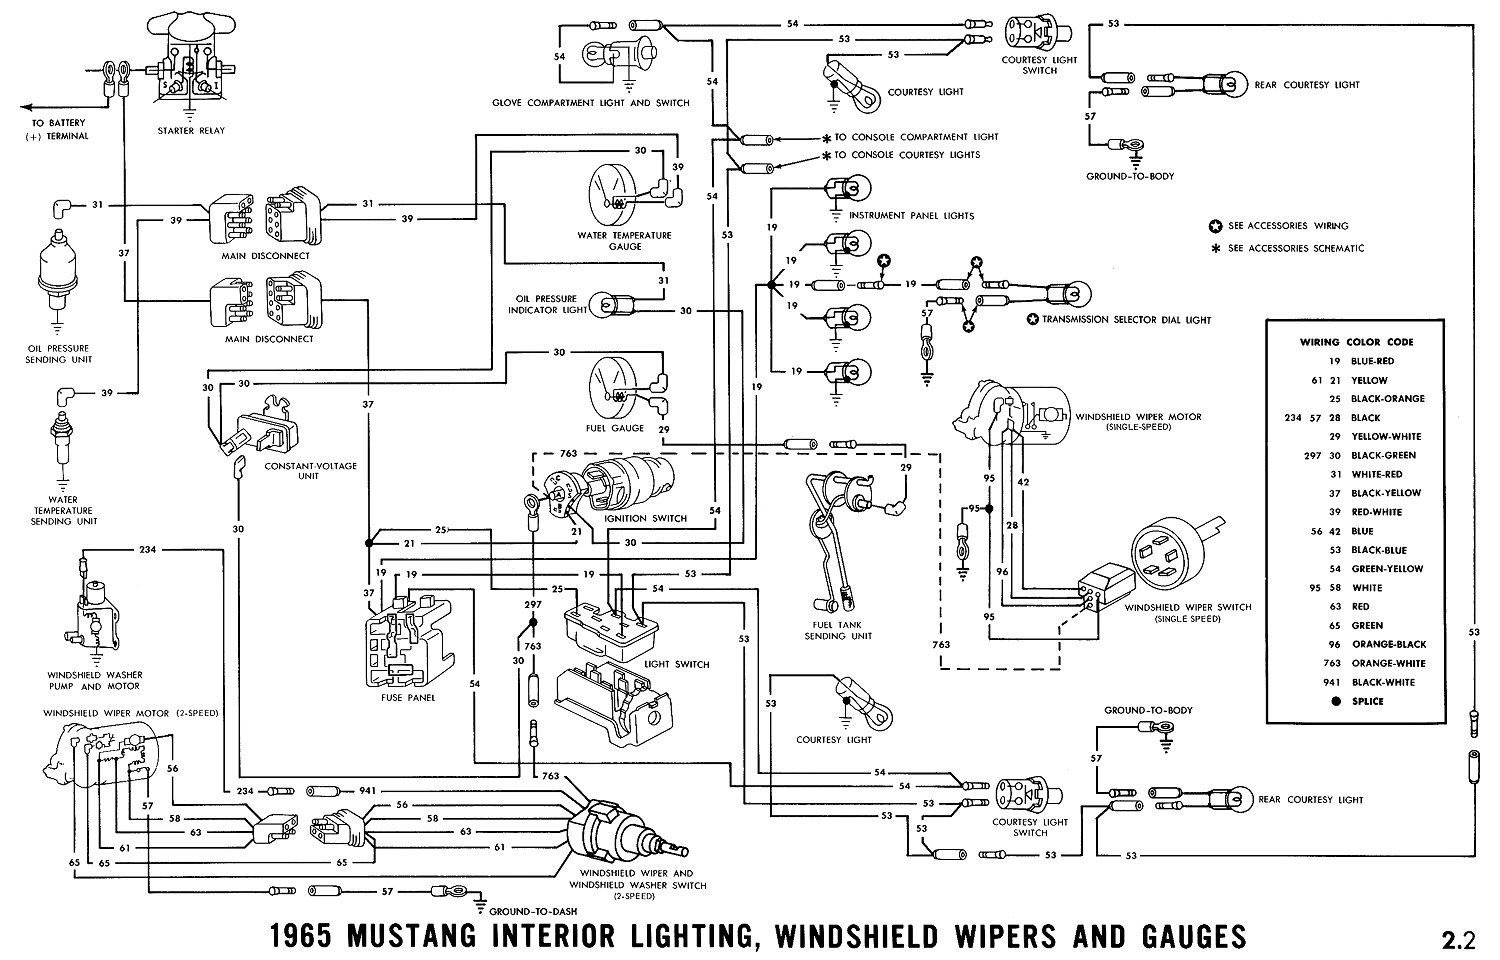 1965 mustang tail lights wiring diagram 65 mustang tail lights wiring diagram